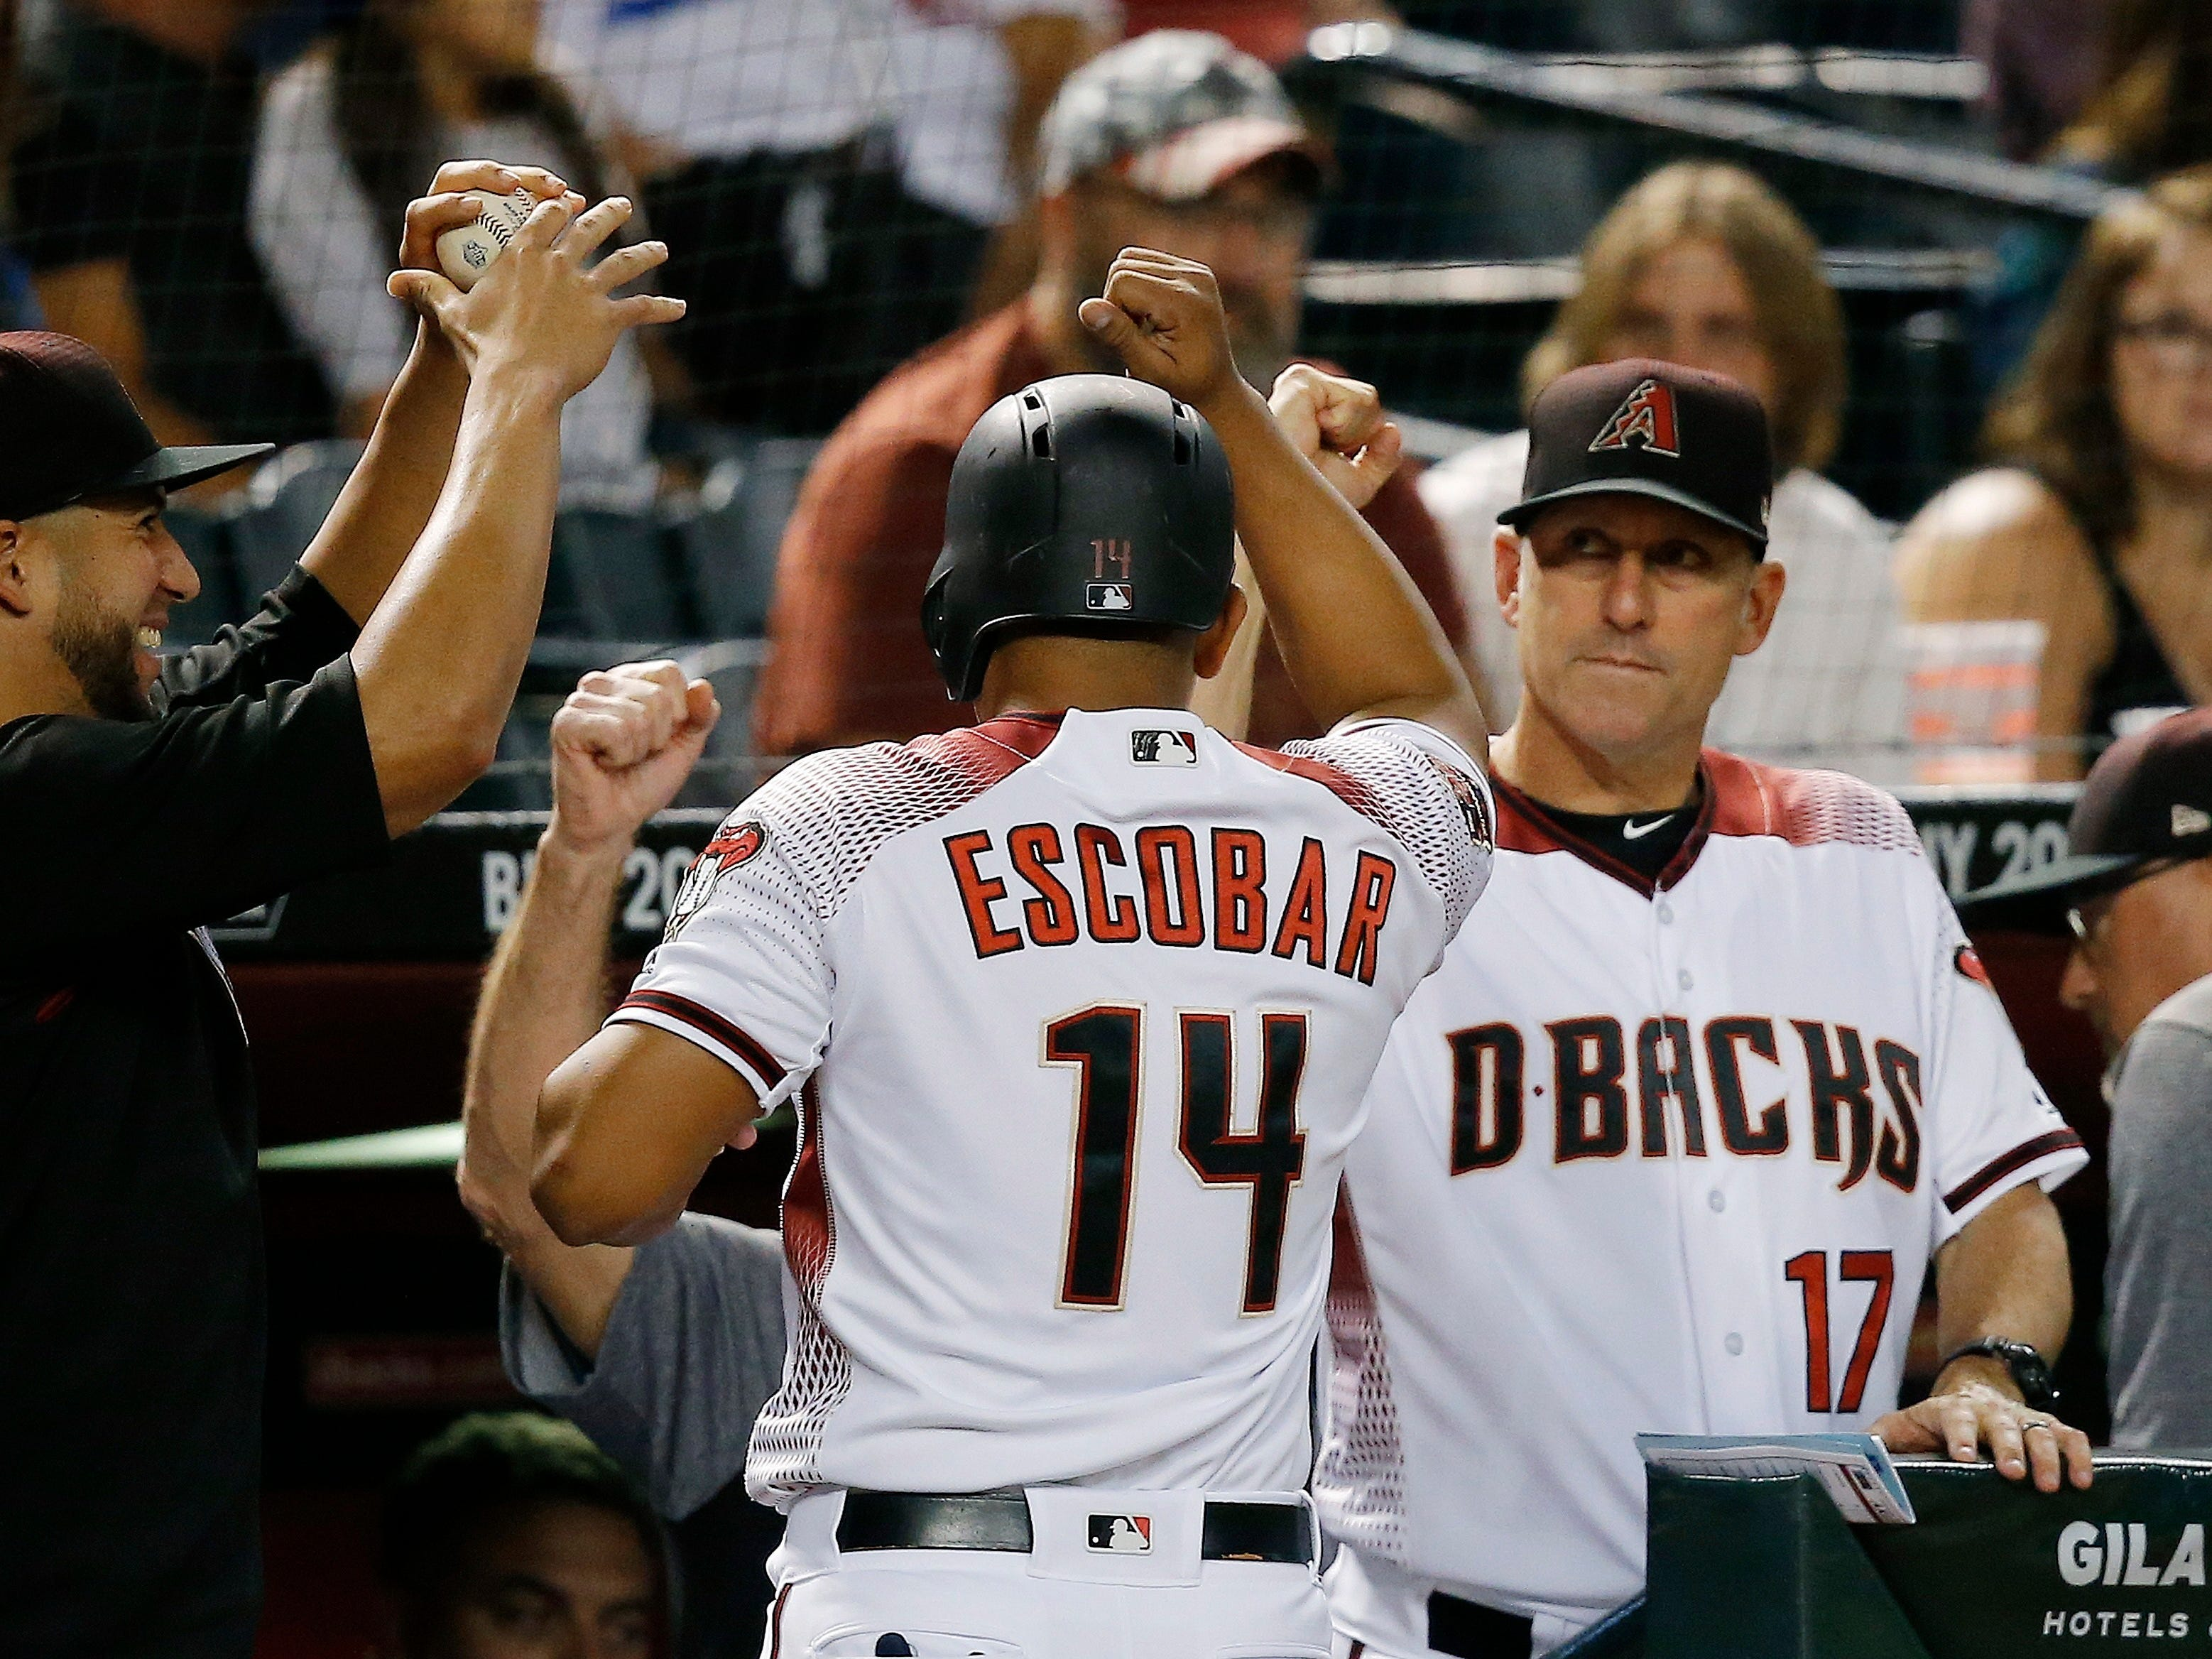 Arizona Diamondbacks' Eduardo Escobar (14) celebrates his run scored against the Los Angeles Dodgers with David Peralta, left, and manager Torey Lovullo (17) during the first inning of a baseball game, Monday, Sept. 24, 2018, in Phoenix. (AP Photo/Ross D. Franklin)